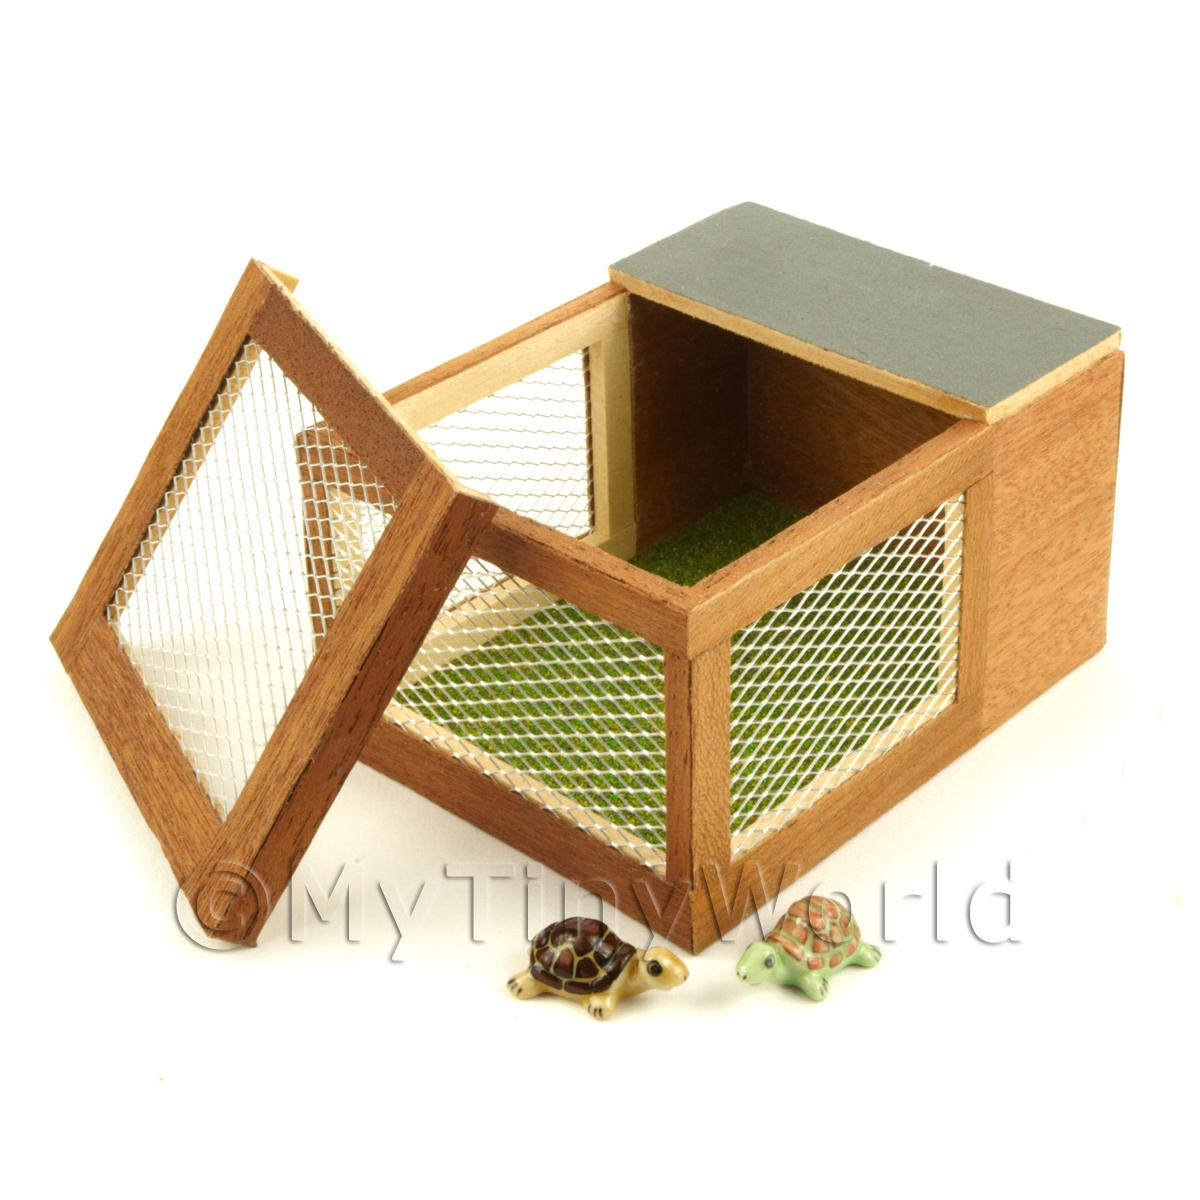 Dolls House Miniature Wooden Animal Hutch With 2 Tortoises